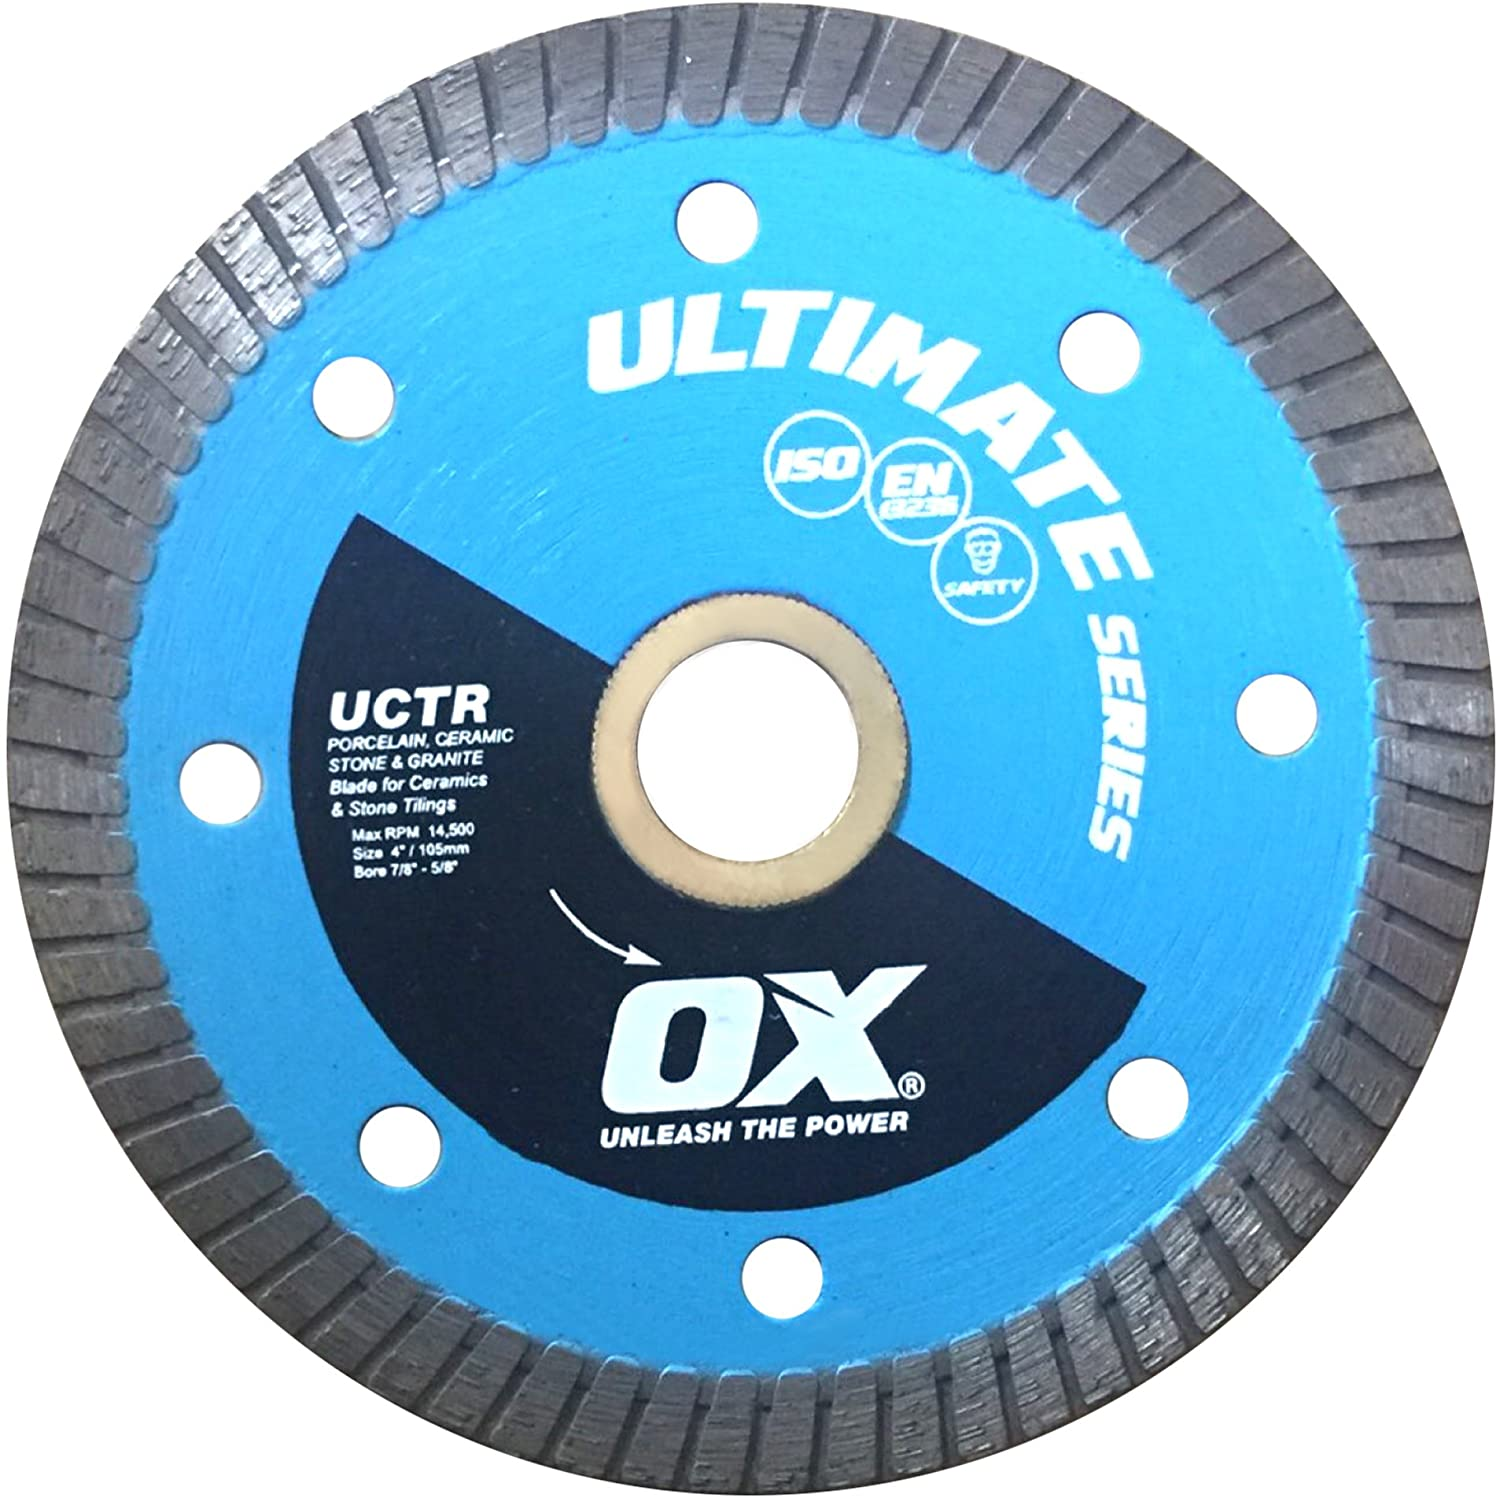 Ultimate Porcelain Tile Cutting Diamond Blade Series | Tile/Porcelain - OX Tools